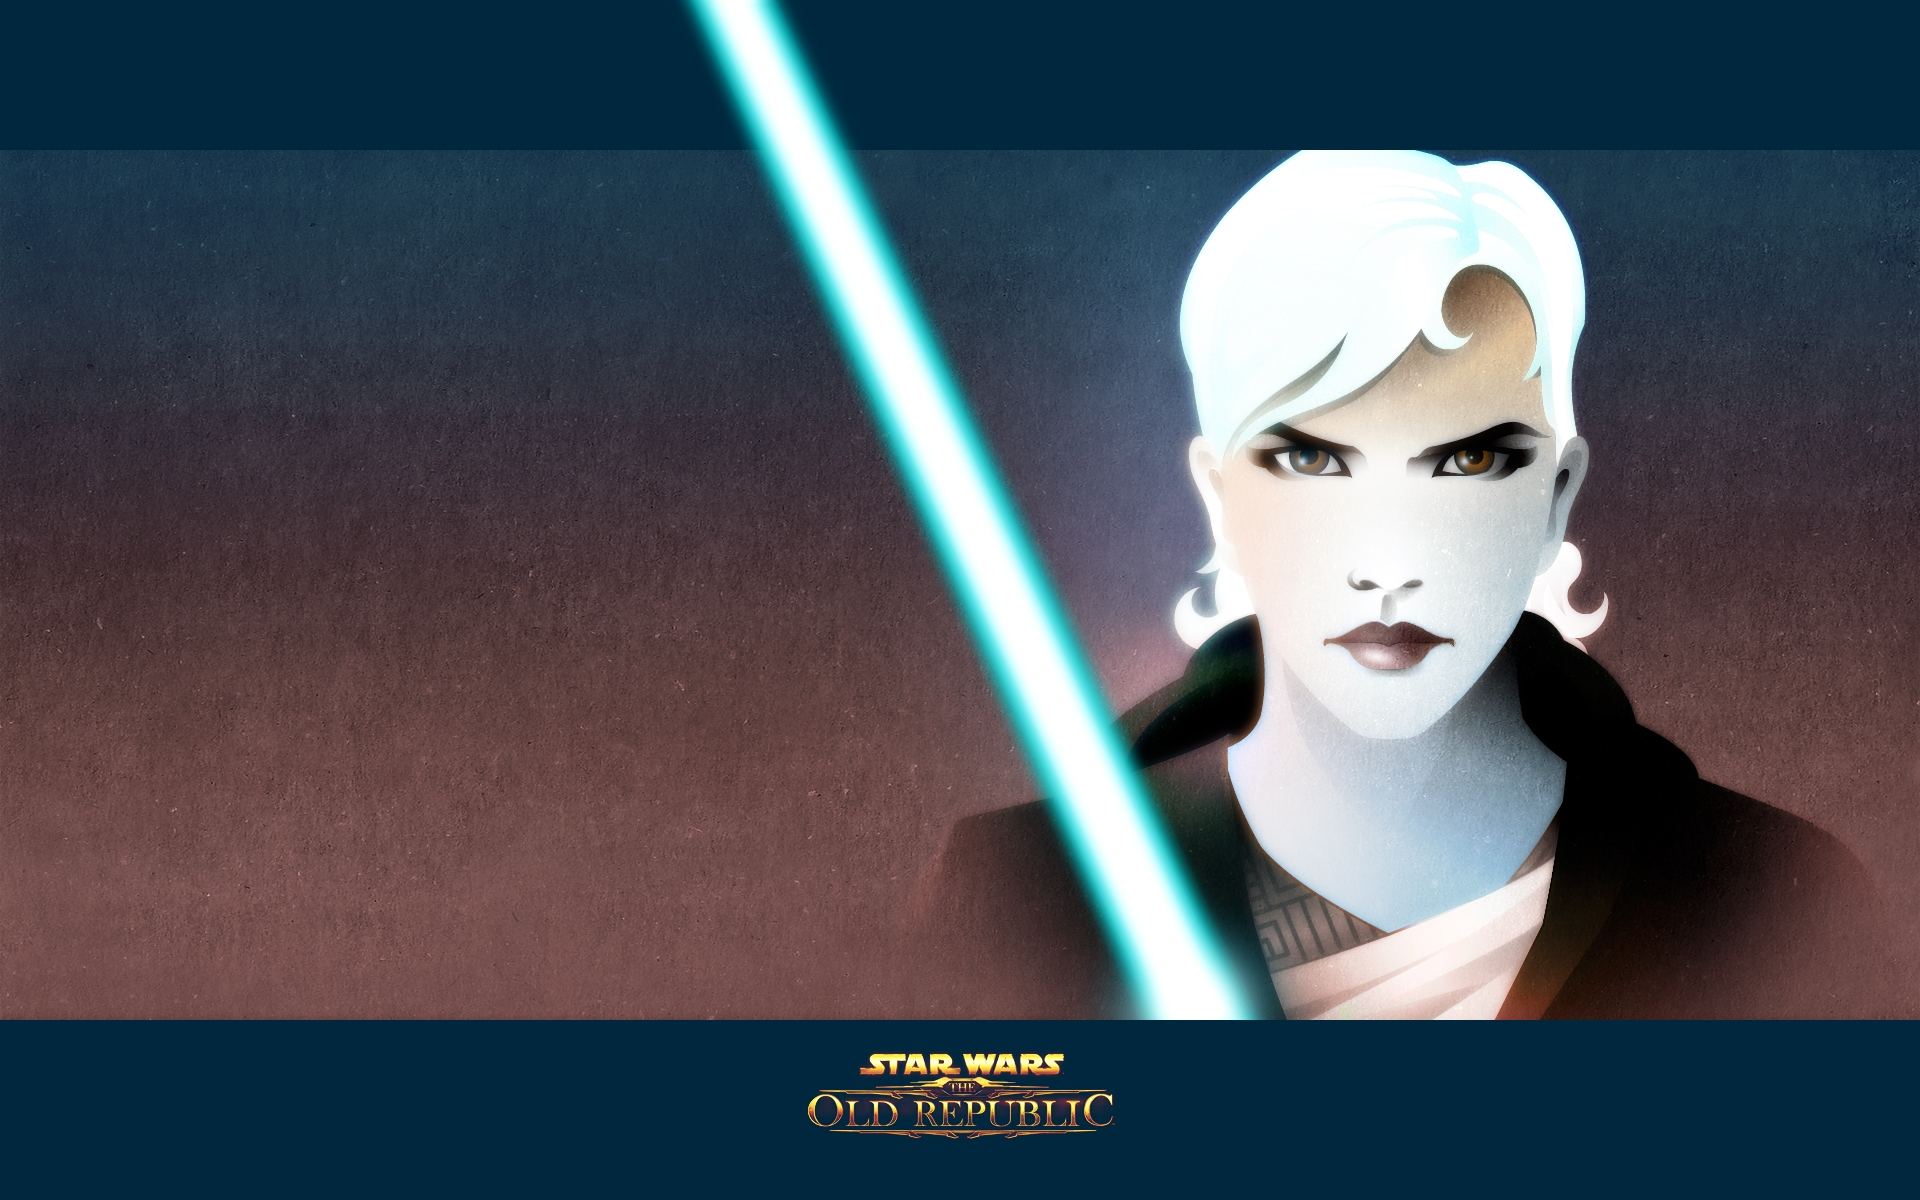 Swtor Backgrounds wallpaper